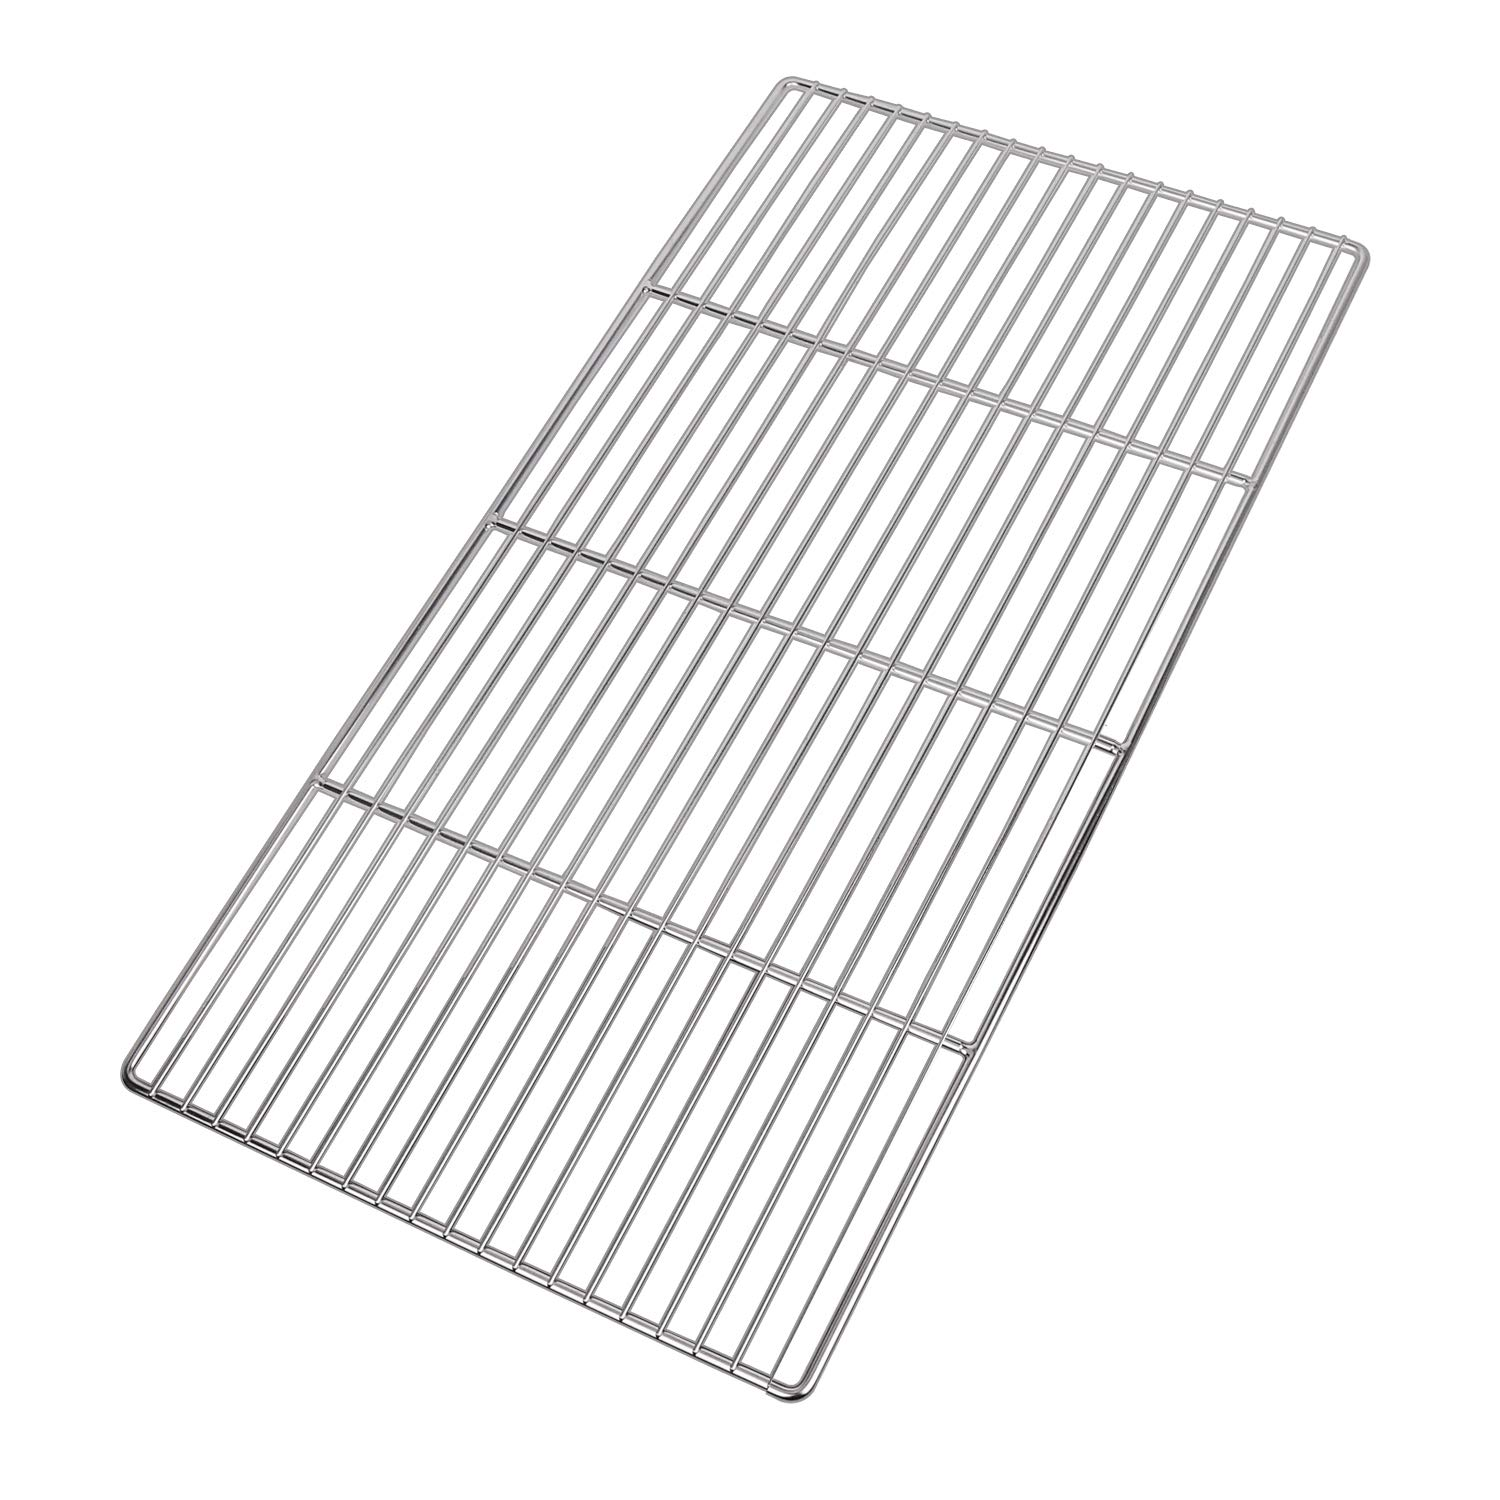 LANEJOY Barbecue Wire Mesh, Stainless Steel BBQ Grill Mat, Multifunction Grill Cooking Grid Grate 2 Pack (X-Medium) by LANEJOY